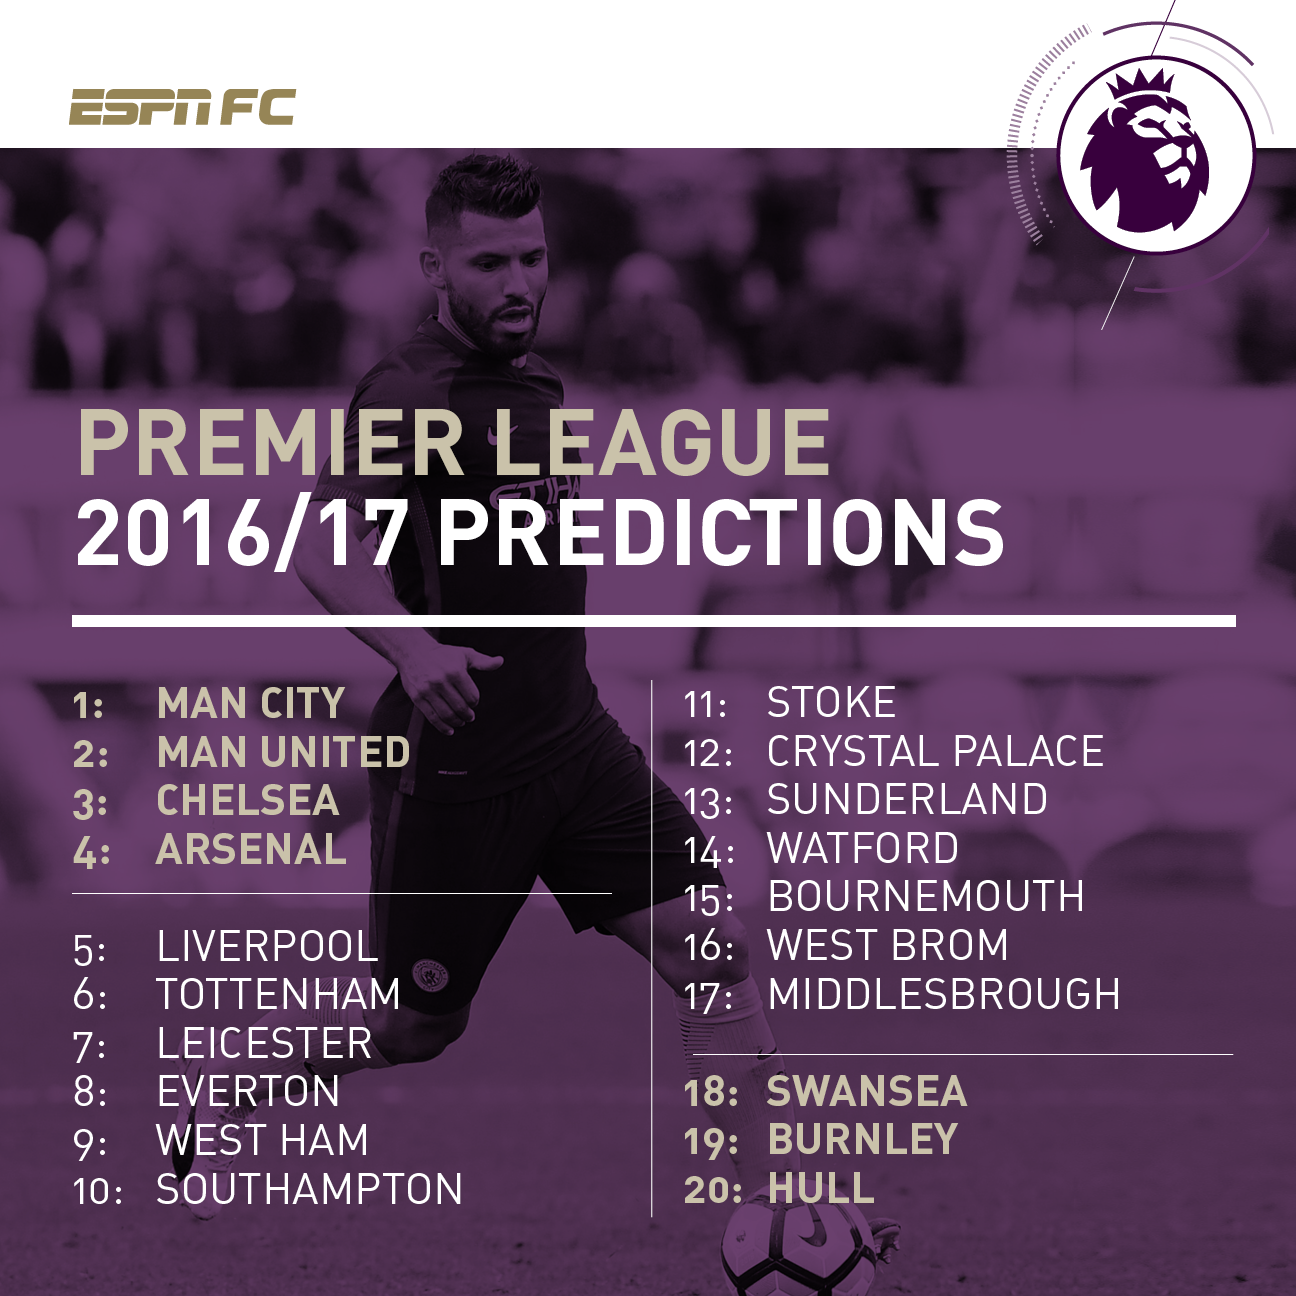 Football Manager Predicts Champions League: ESPN FC's Predicted Premier League Table And Writers' Picks